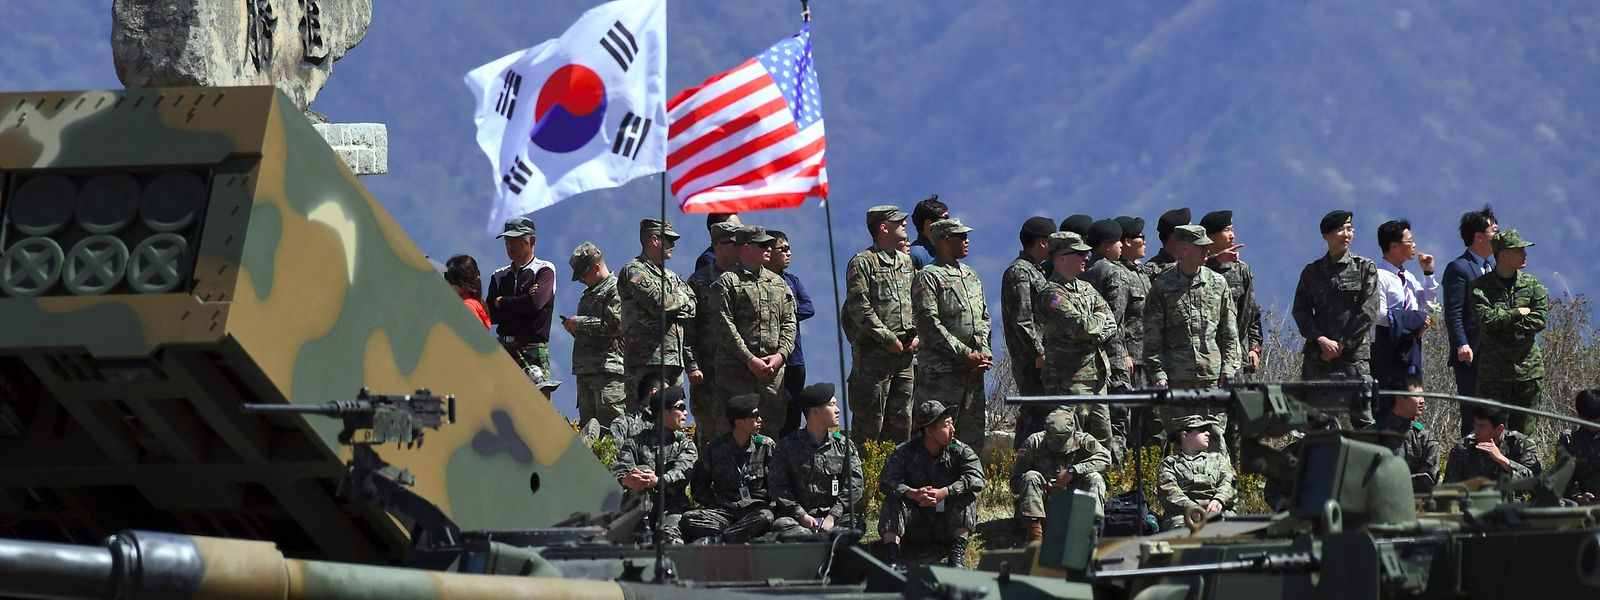 """(FILES) This file photo taken on April 26, 2017 shows South Korean and US soldiers watching from an observation post during a joint live firing drill between South Korea and the US at the Seungjin Fire Training Field in Pocheon, 65 kms northeast of Seoul. The US military has indefinitely postponed major joint exercises with South Korea, an official told AFP on June 14, 2018, acting on President Donald Trump's pledge to halt the """"provocative"""" military drills following his summit with North Korea's Kim Jong Un. / AFP PHOTO / JUNG Yeon-Je"""